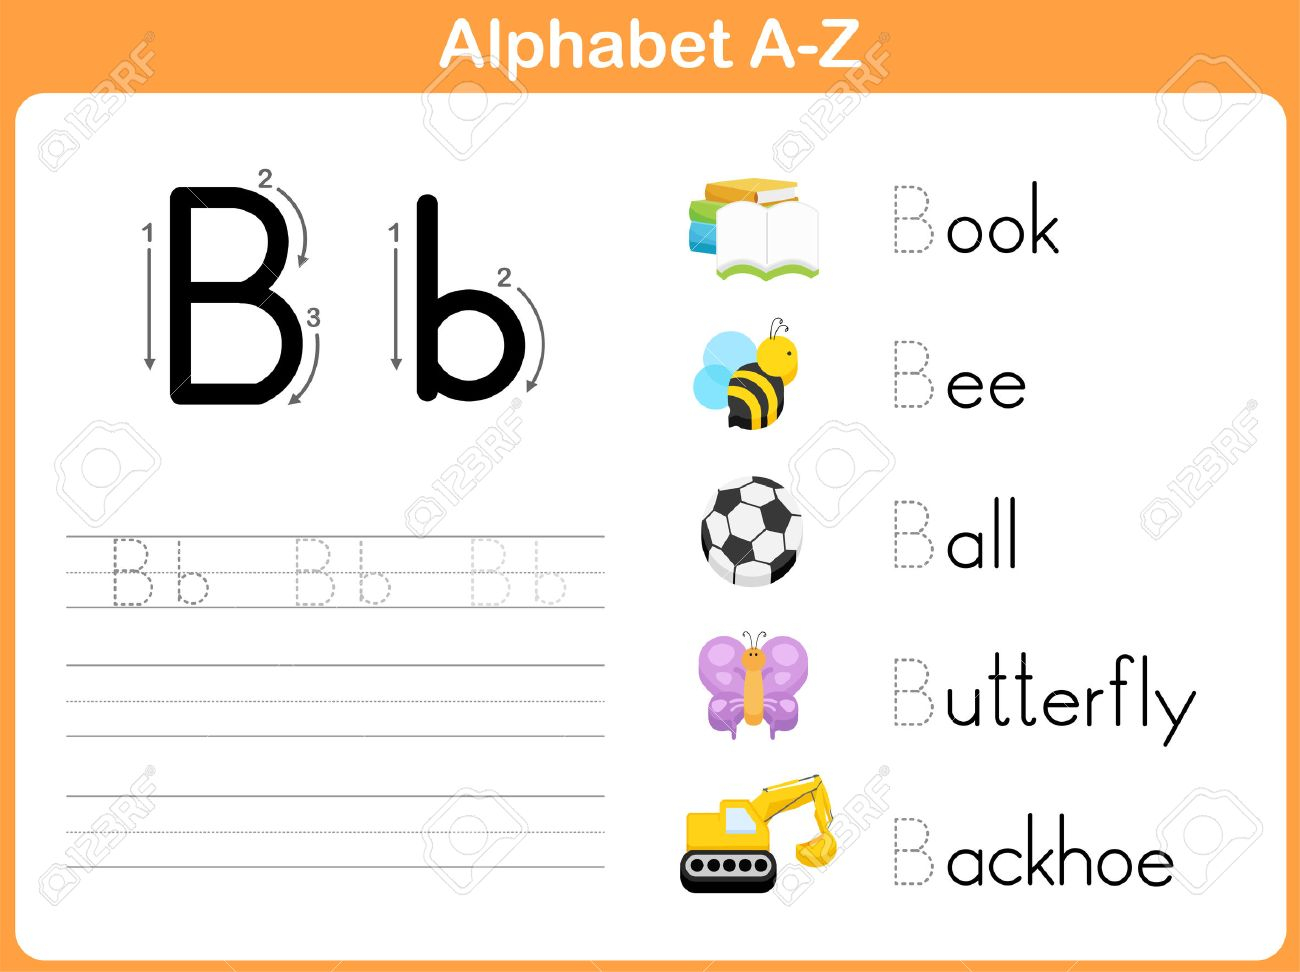 Alphabet Tracing Worksheet: Writing A-Z intended for Alphabet Worksheets A Z With Pictures